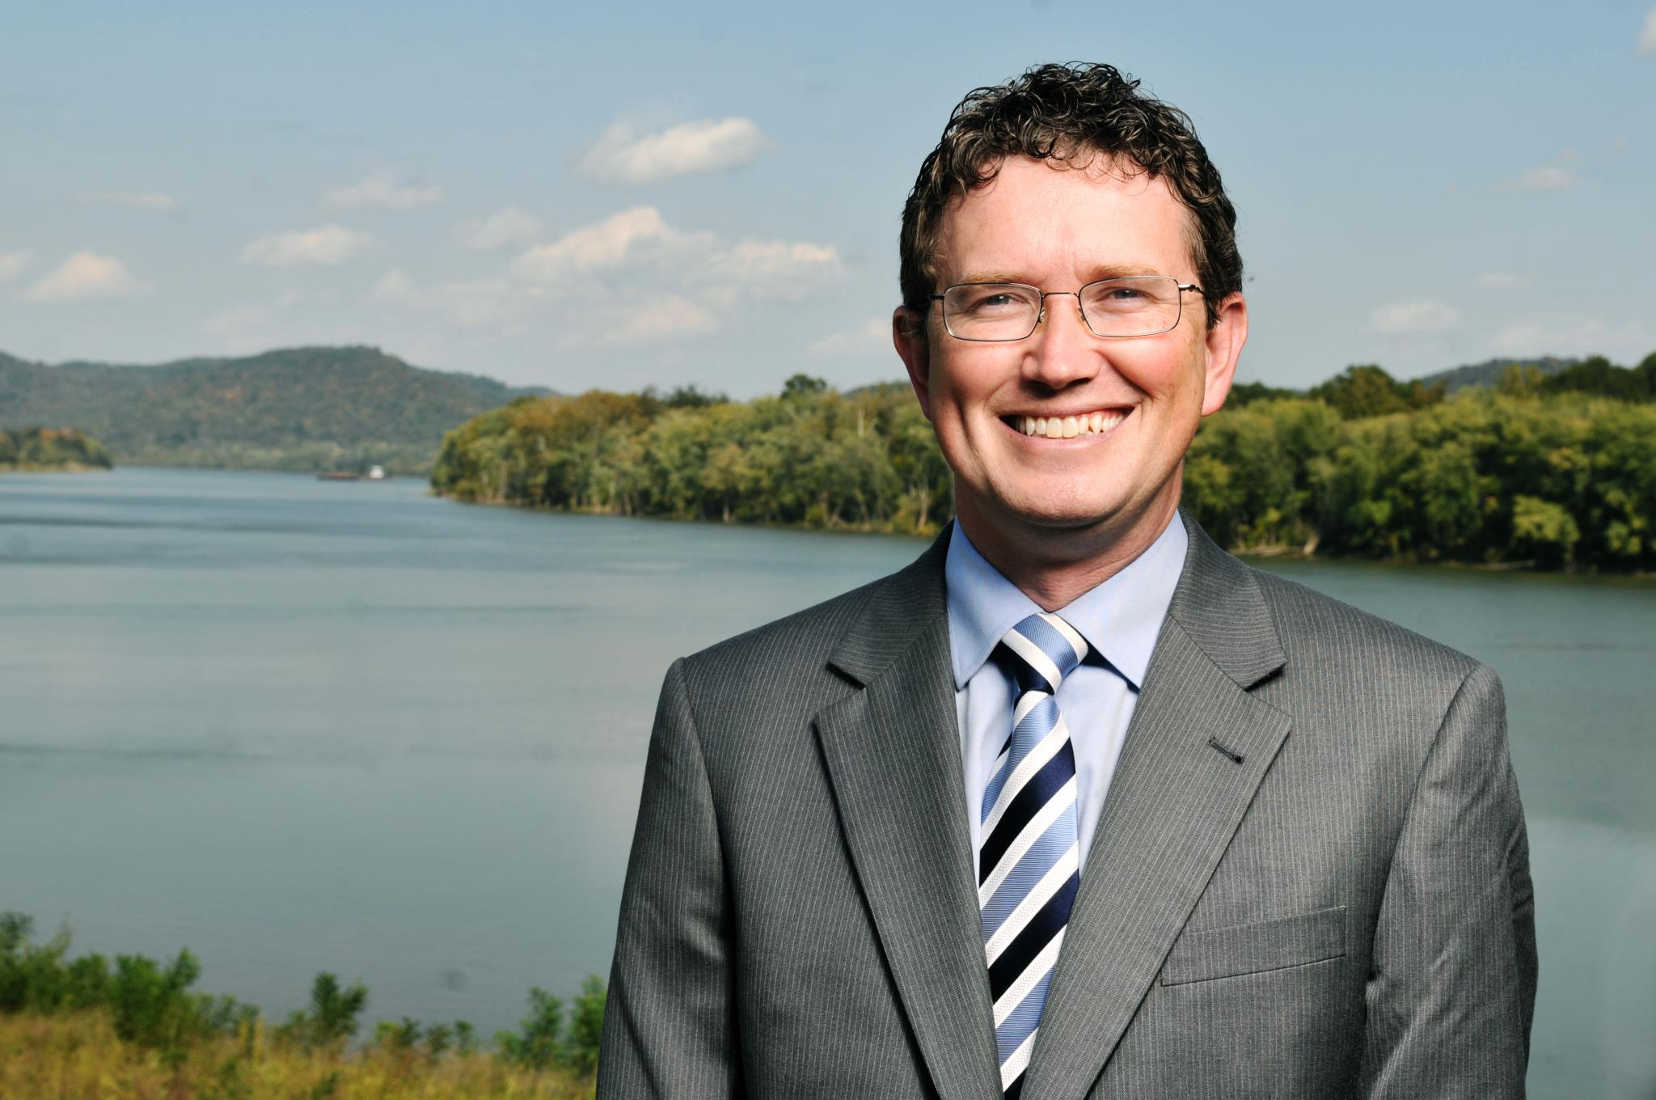 Constitutional Carry Opponent Considers Challenging Pro-Gun Congressman Thomas Massie